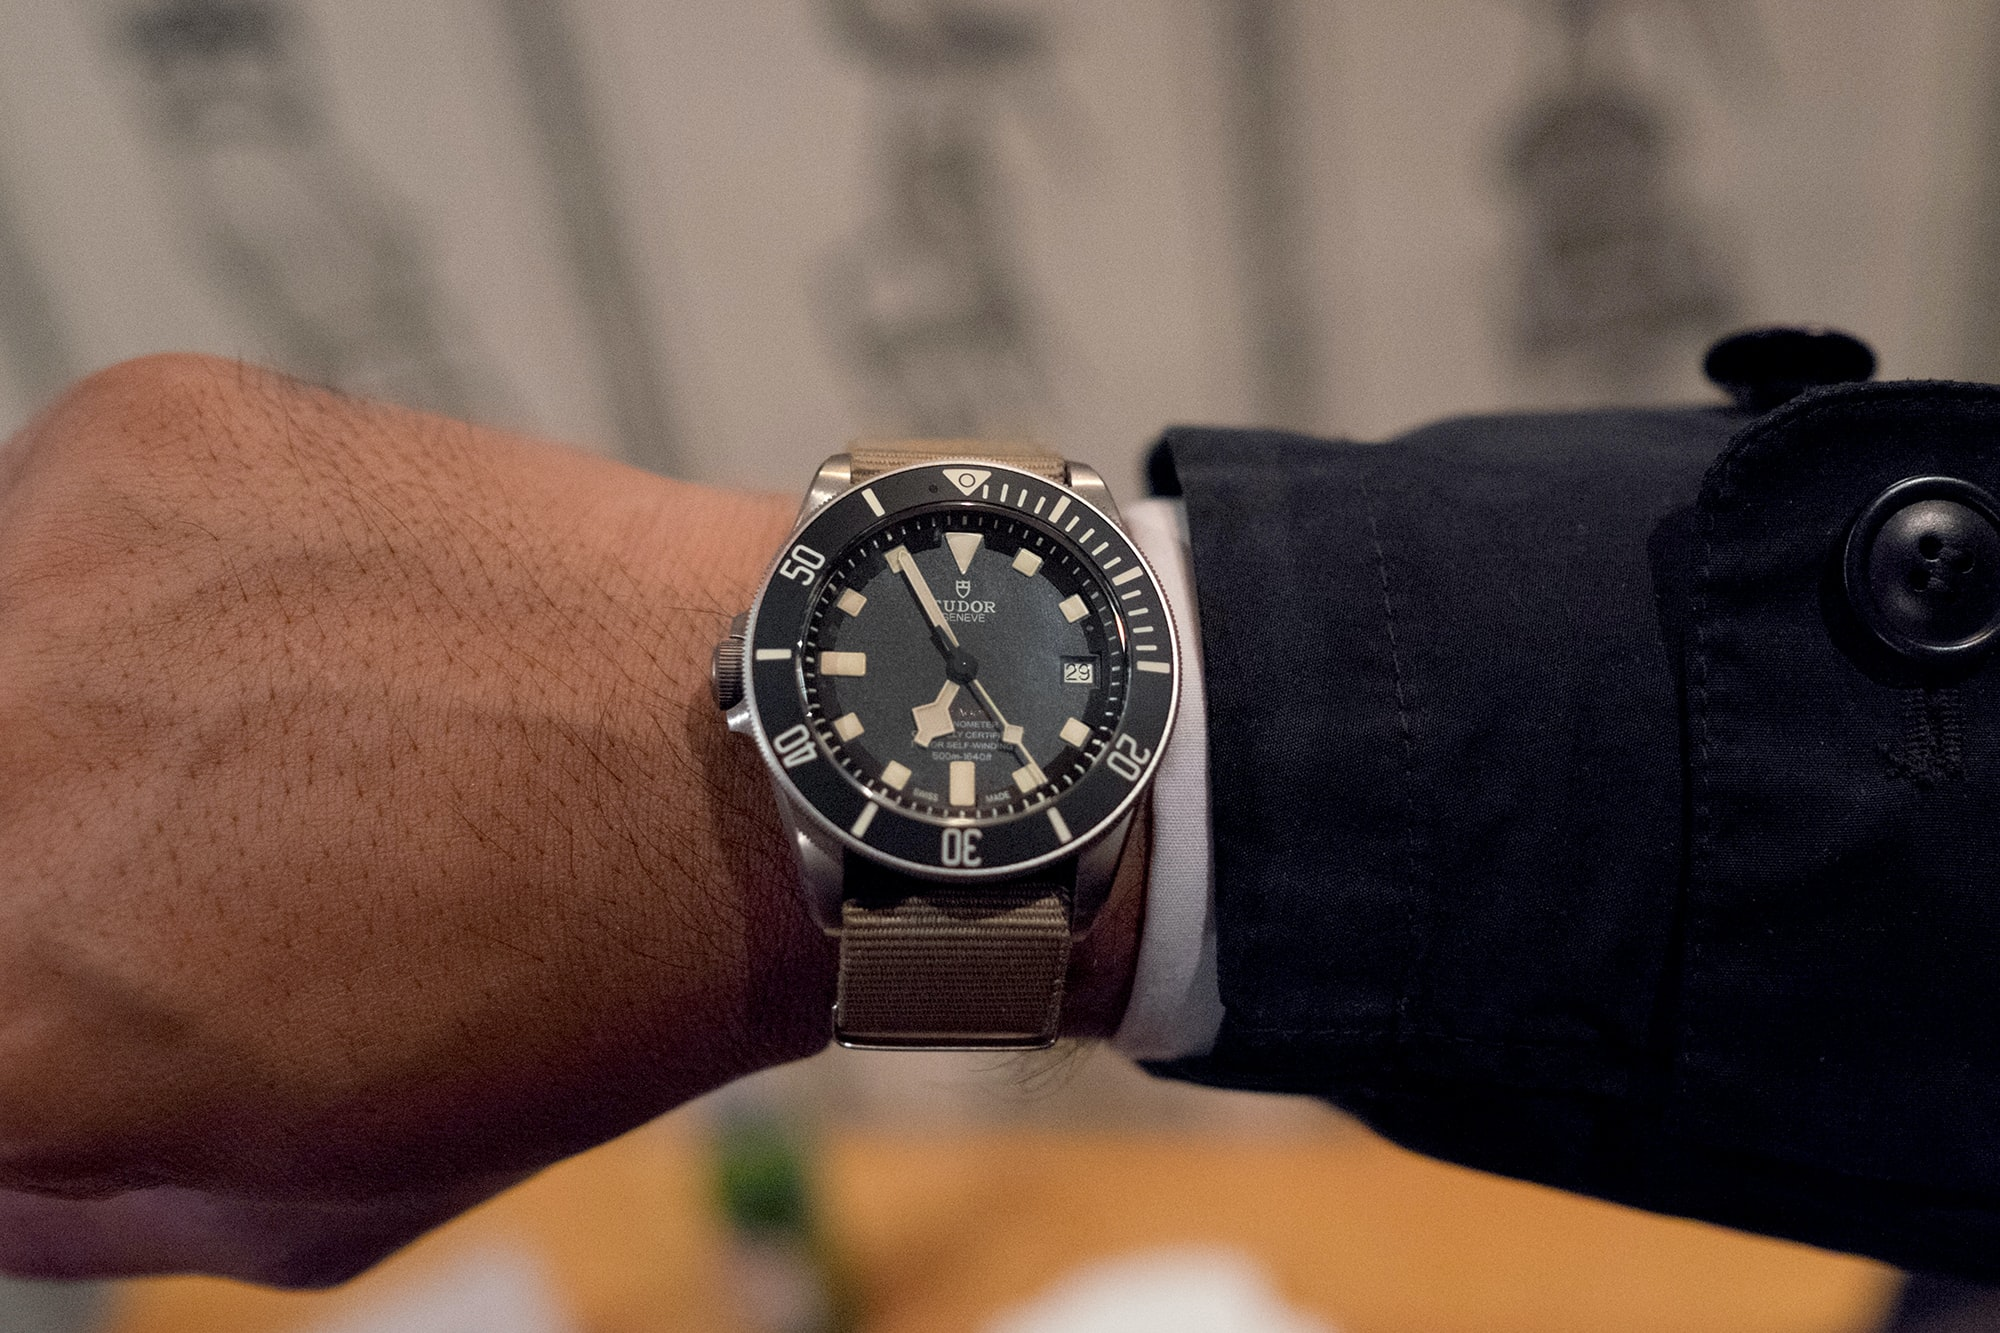 Photo Report: Watch Spotting At The HODINKEE Meet-Up In London (Plus Our Holiday 2016 Pop-Up At Harrods) Photo Report: Watch Spotting At The HODINKEE Meet-Up In London (Plus Our Holiday 2016 Pop-Up At Harrods) Hodinkee event 29 nov 2016 28